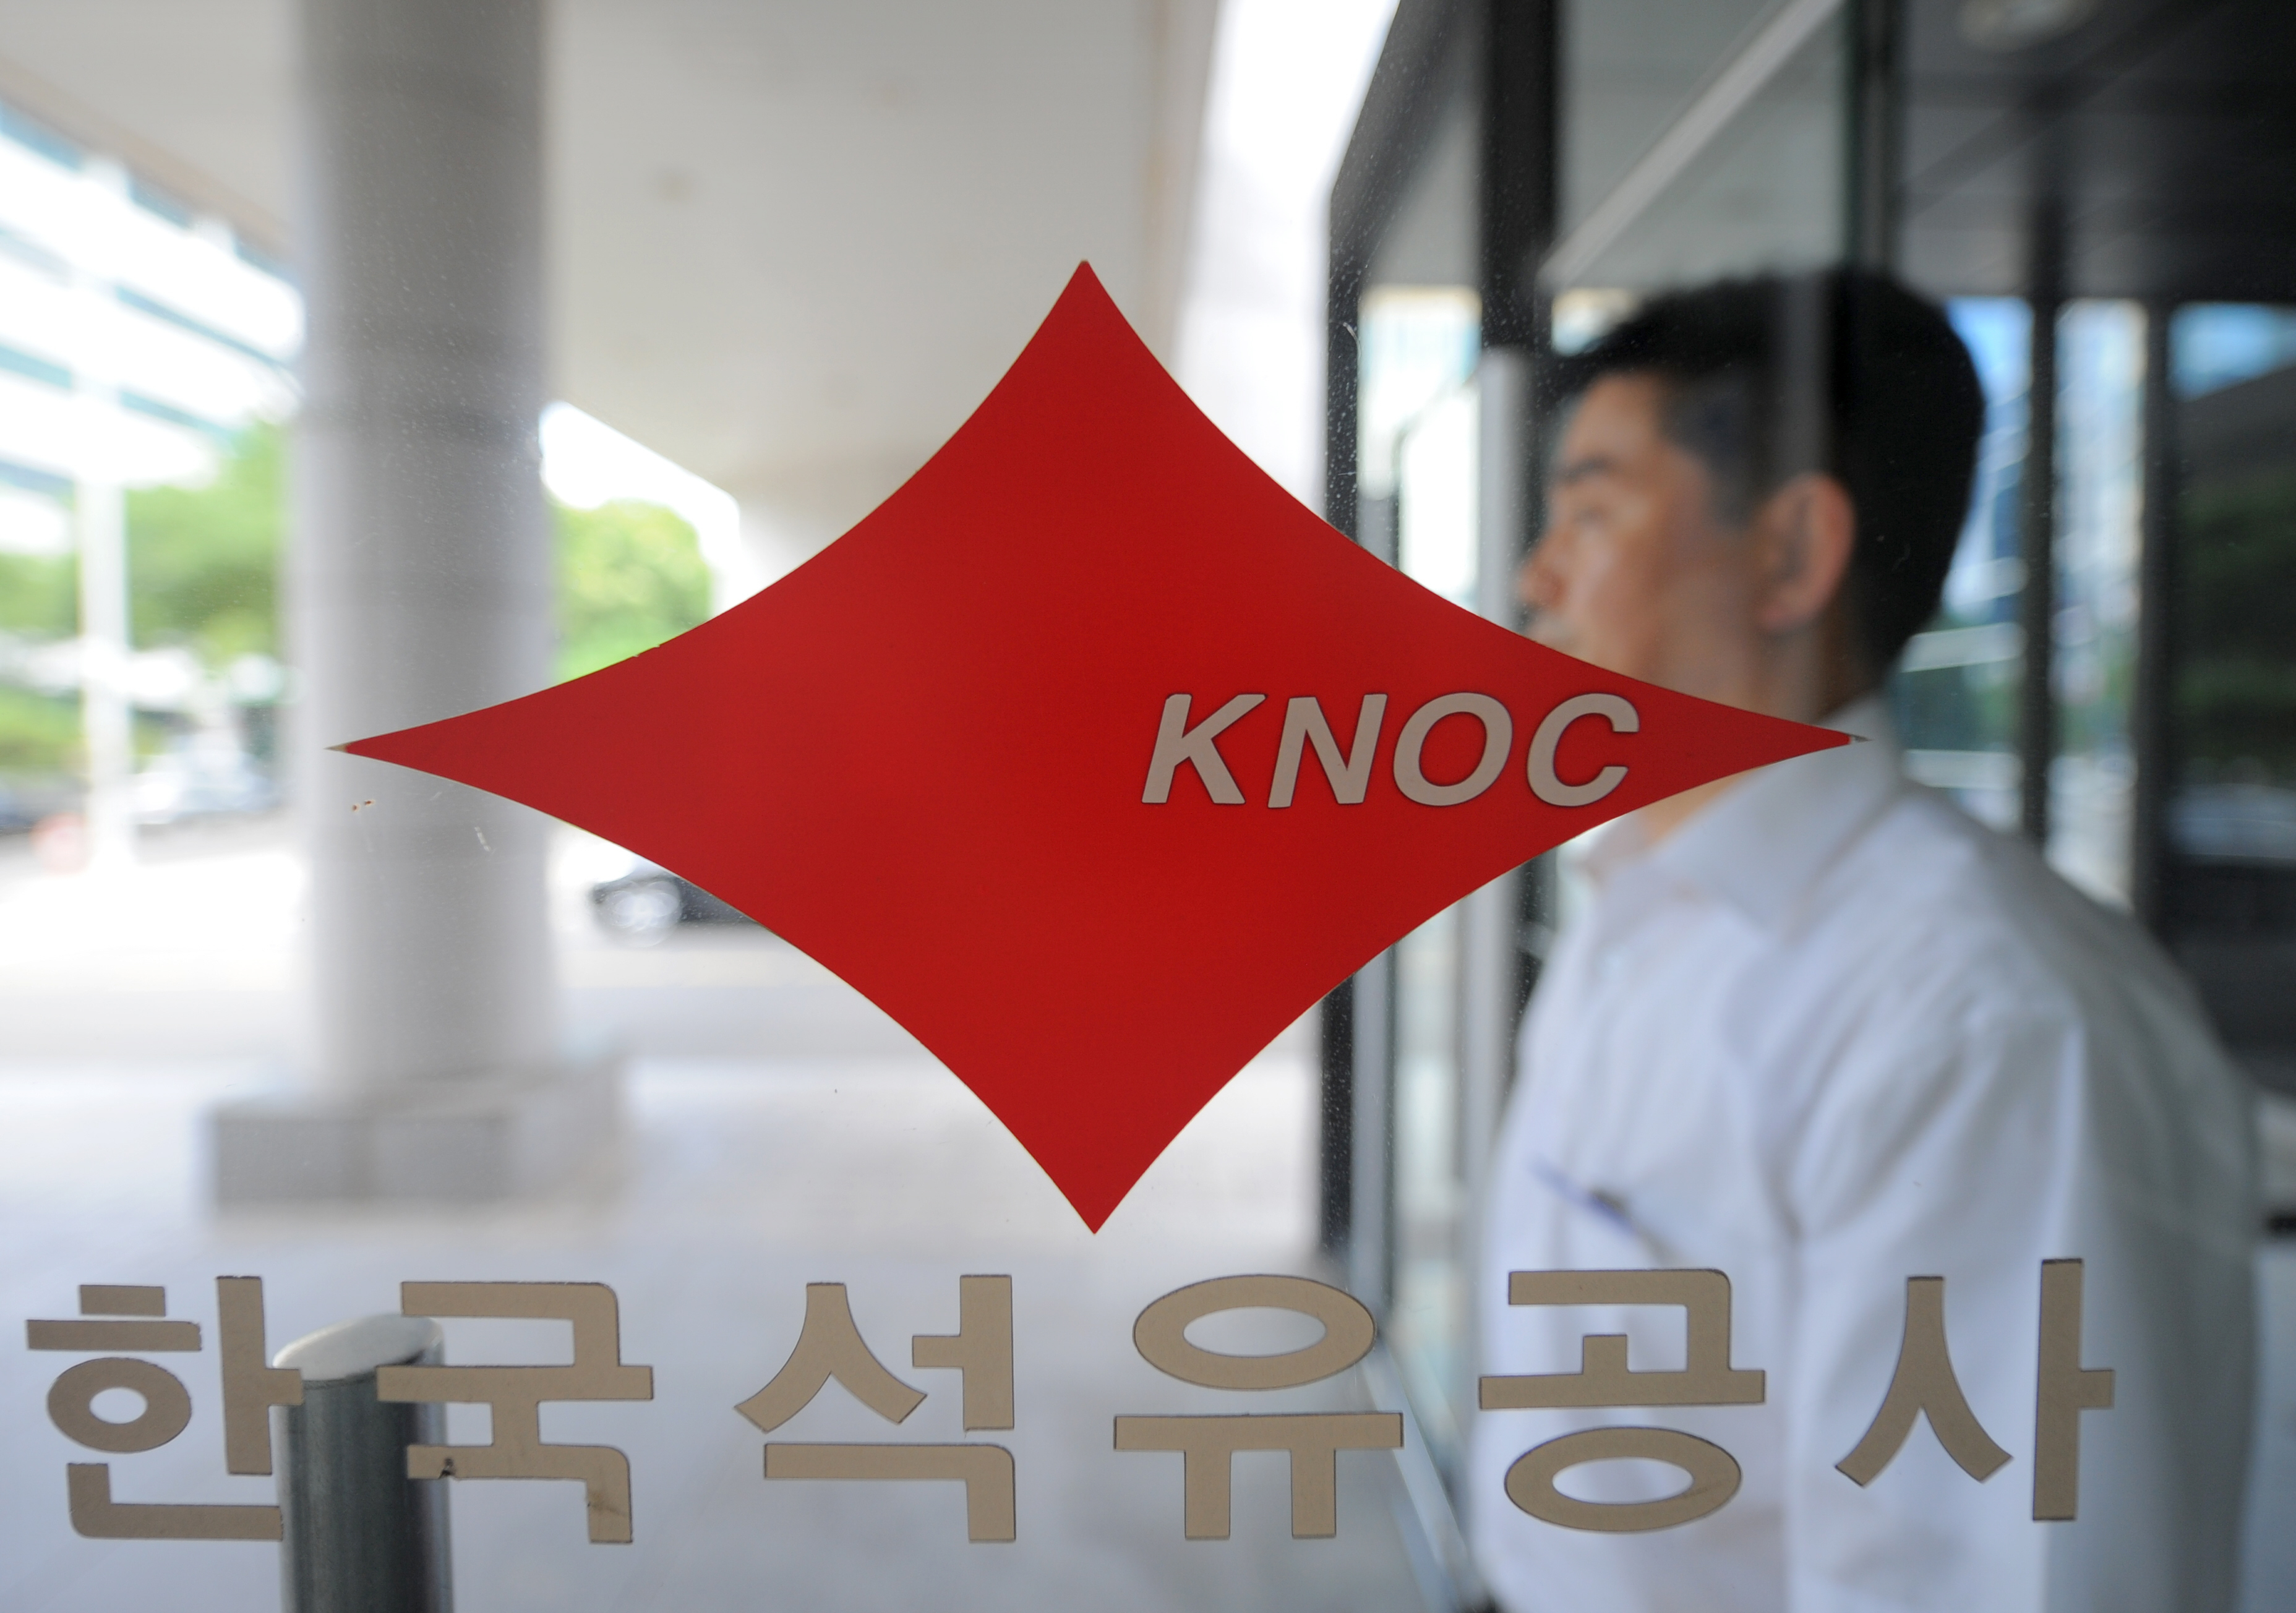 The Korea National Oil Corporation is the national oil and gas company of South Korea, operating oil and gas fields in Vietnam, Libya, Peru, Indonesia, Nigeria, Yemen, Kazakhstan, Russia, Canada, and South Korea.